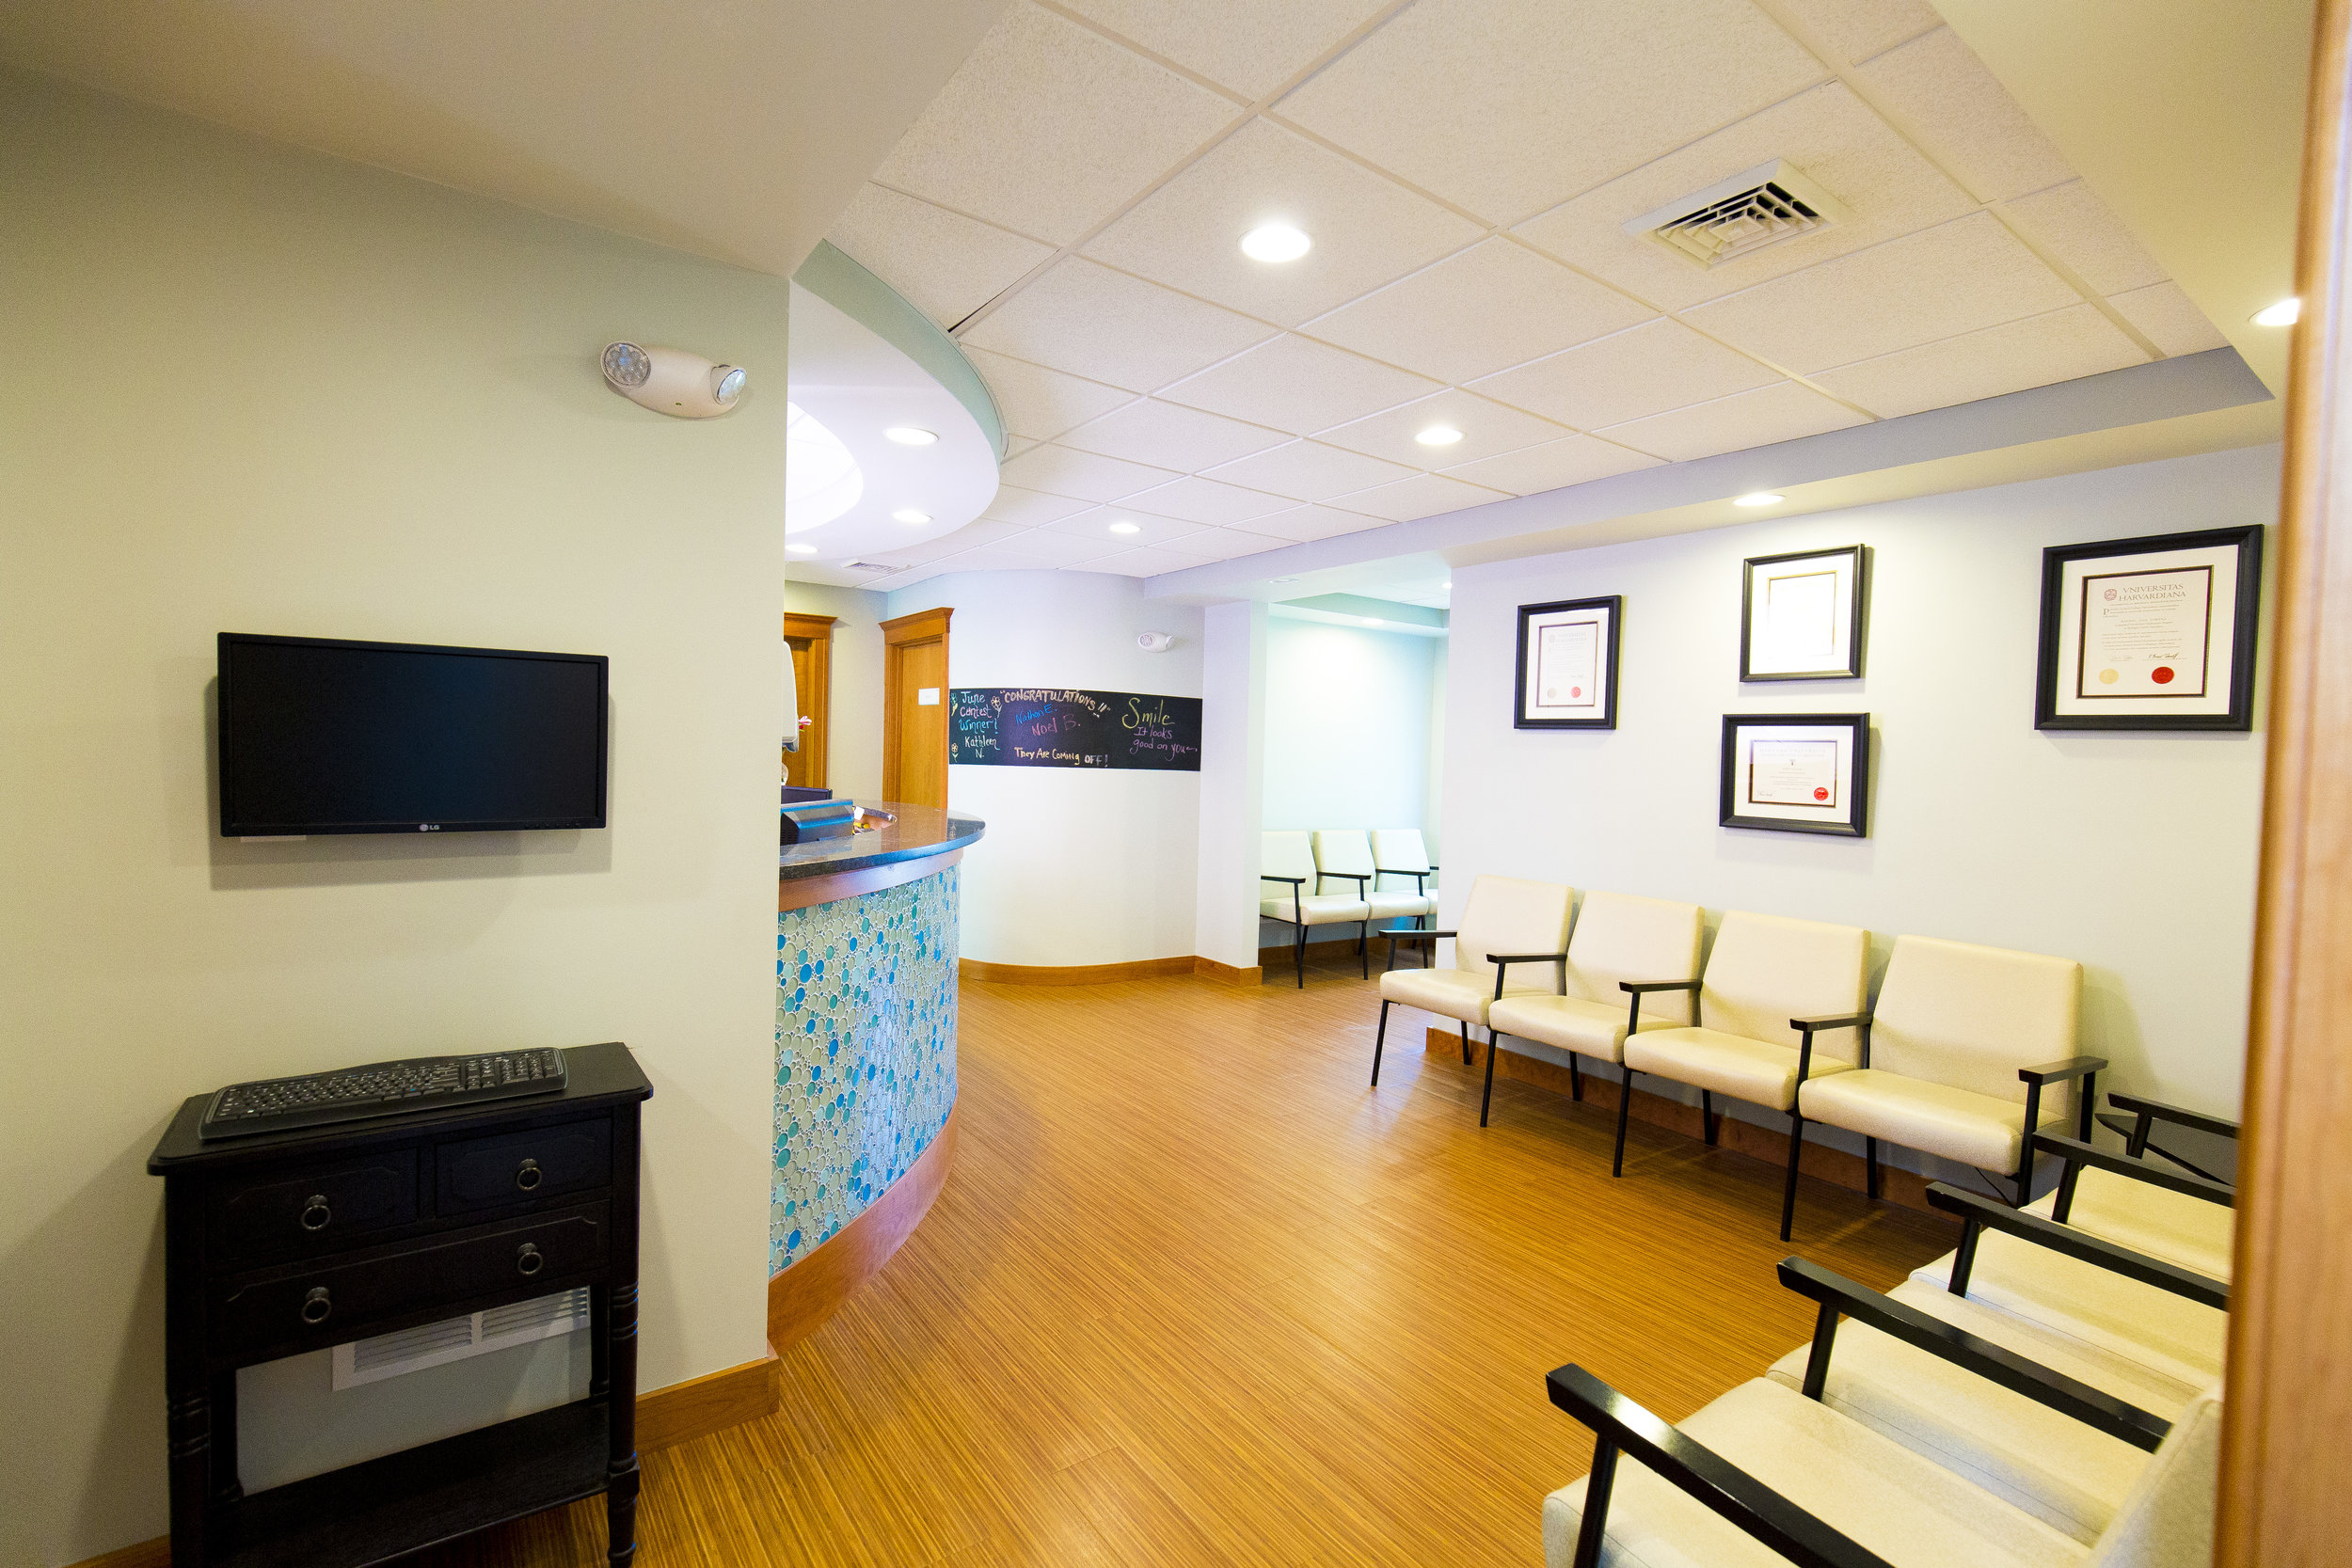 314A1758 Giovanni The Photographer-Boston Lorenz OrthodonticsCorporate Dental Dentist Orthodontics Headquarter  Lorenz Orthodontics.jpg